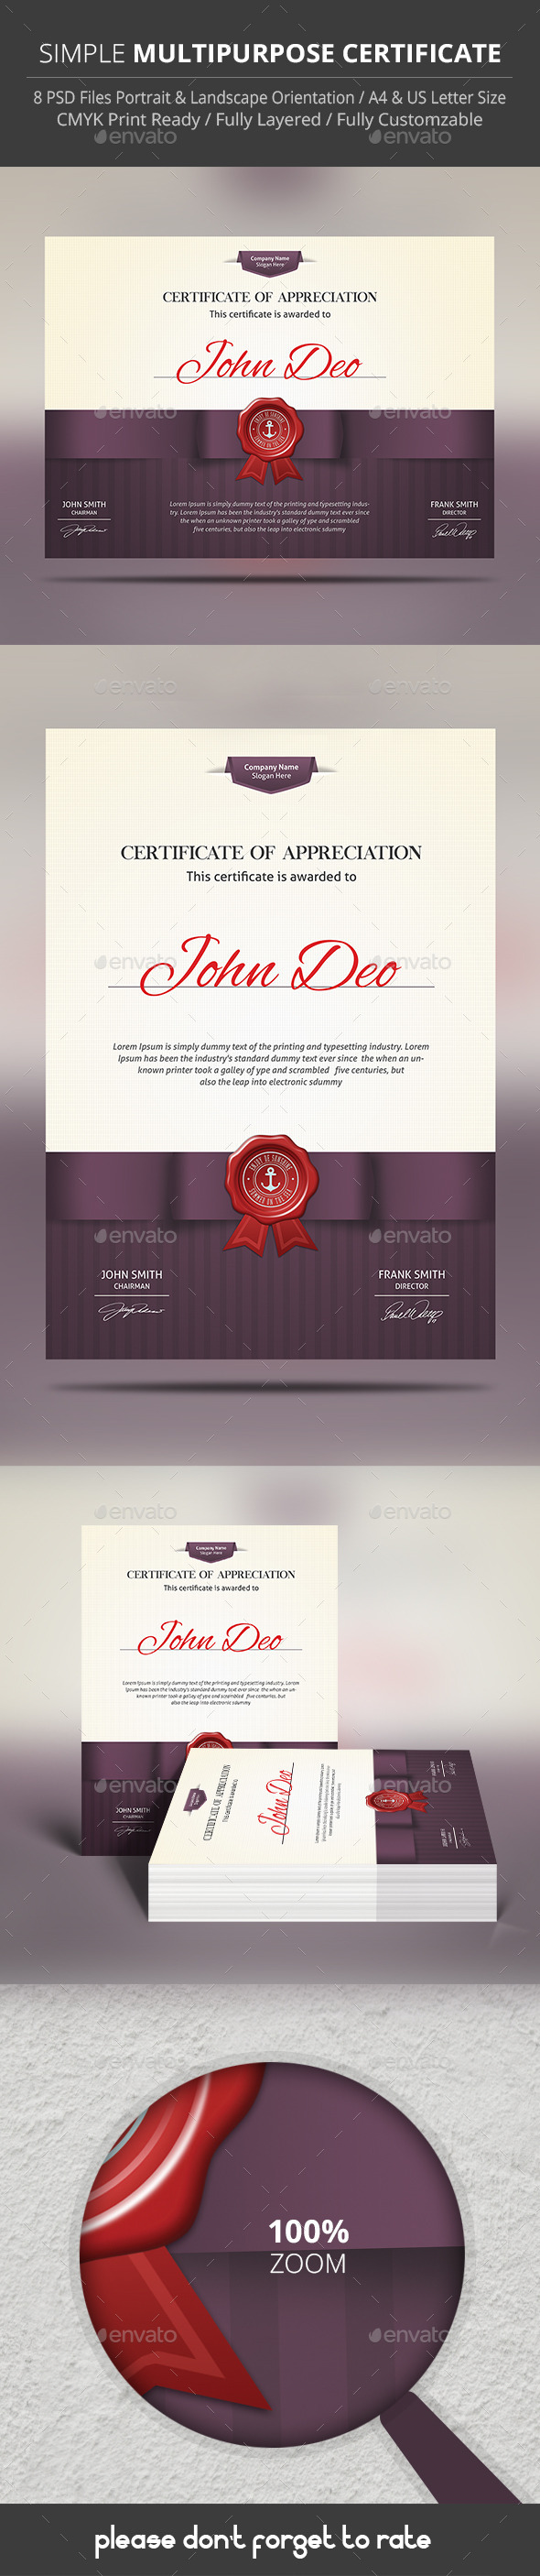 GraphicRiver Simple Multipurpose Certificate 9815829